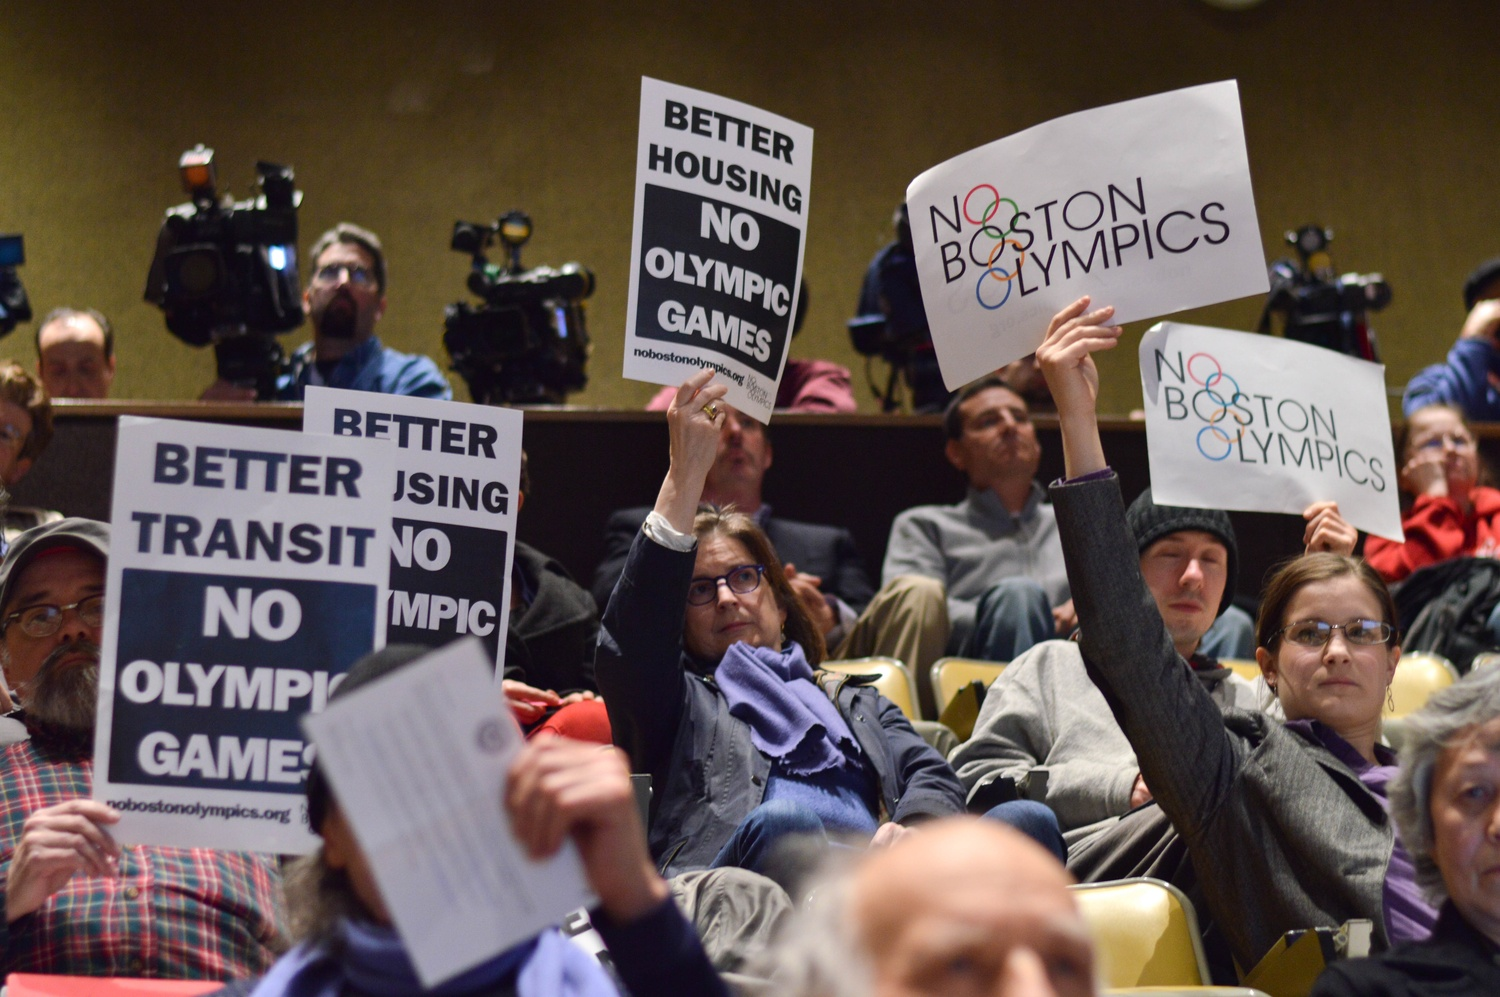 In response to a presentation from representatives of the Boston 2024 Olympic Committee, several members of the audience raise signs opposing the games Tuesday evening. The meeting, held at the Harvard Business School, was one of many planned by Olympic Boston 2024 to solicit community feedback.